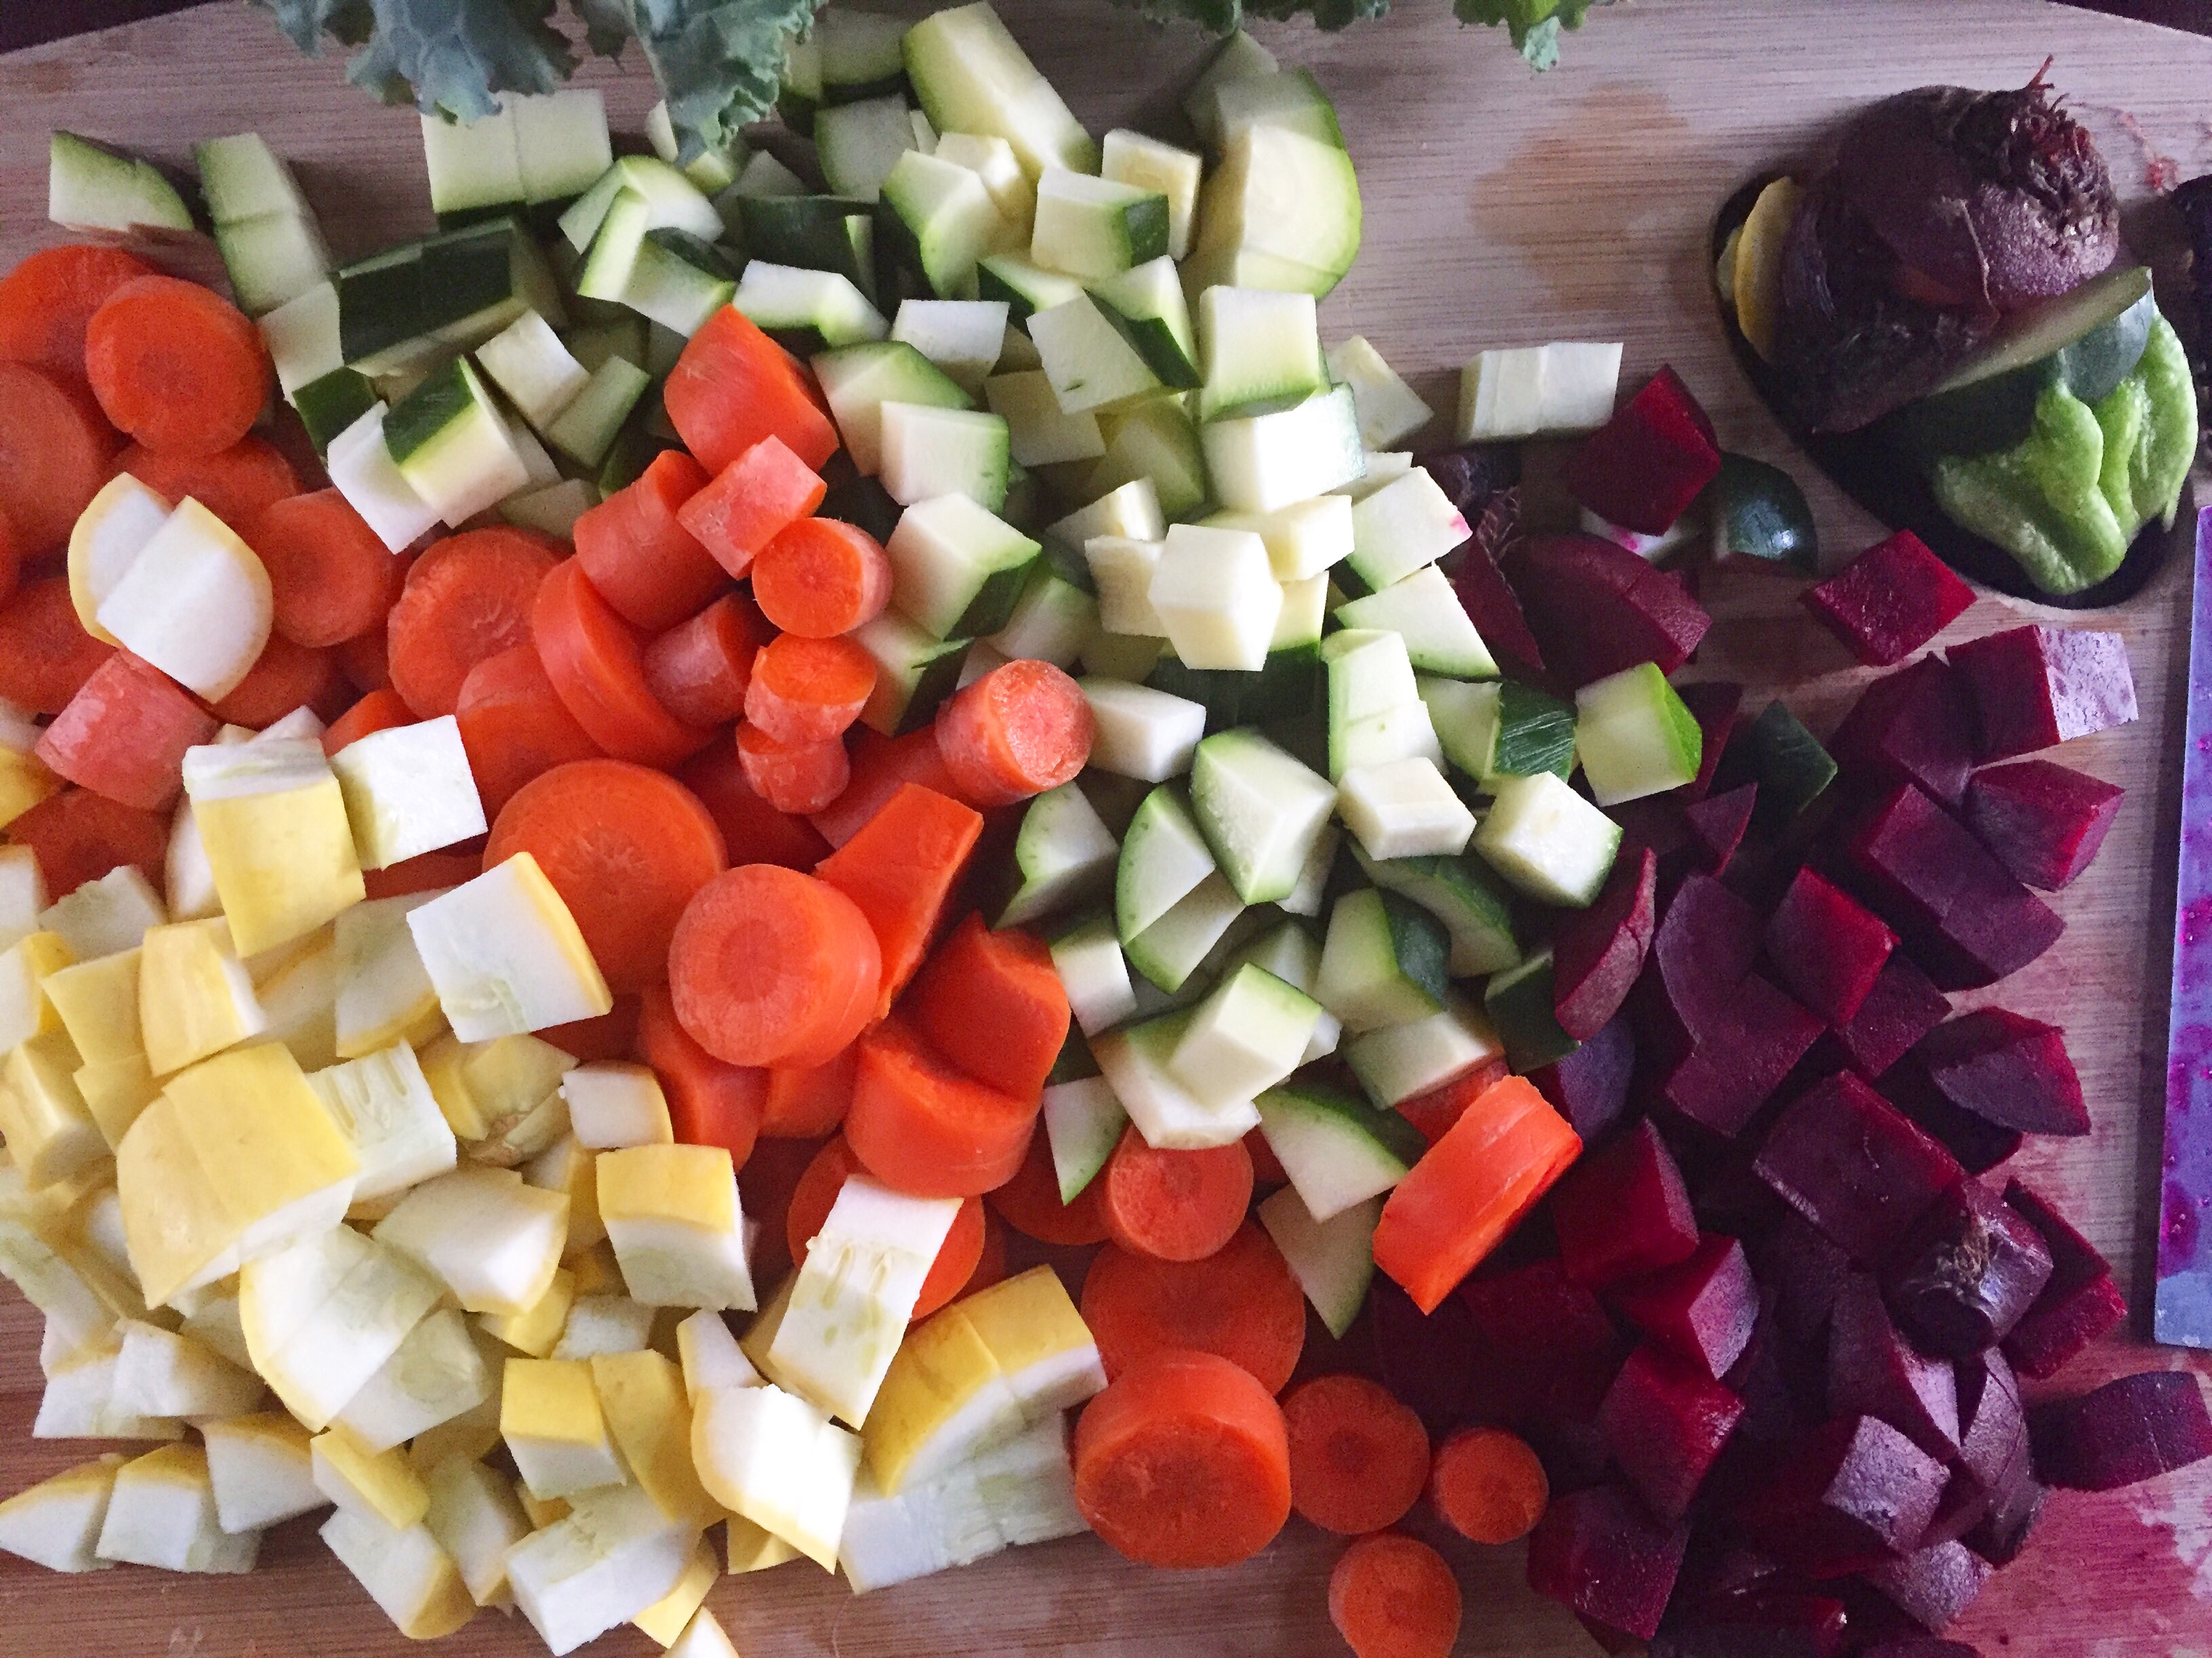 Make this rainbow soup brimming with fresh veggies, protein, and flavor in about 45 minutes for the perfect good-for-you comfort meal. Recipe by Dash of Jazz